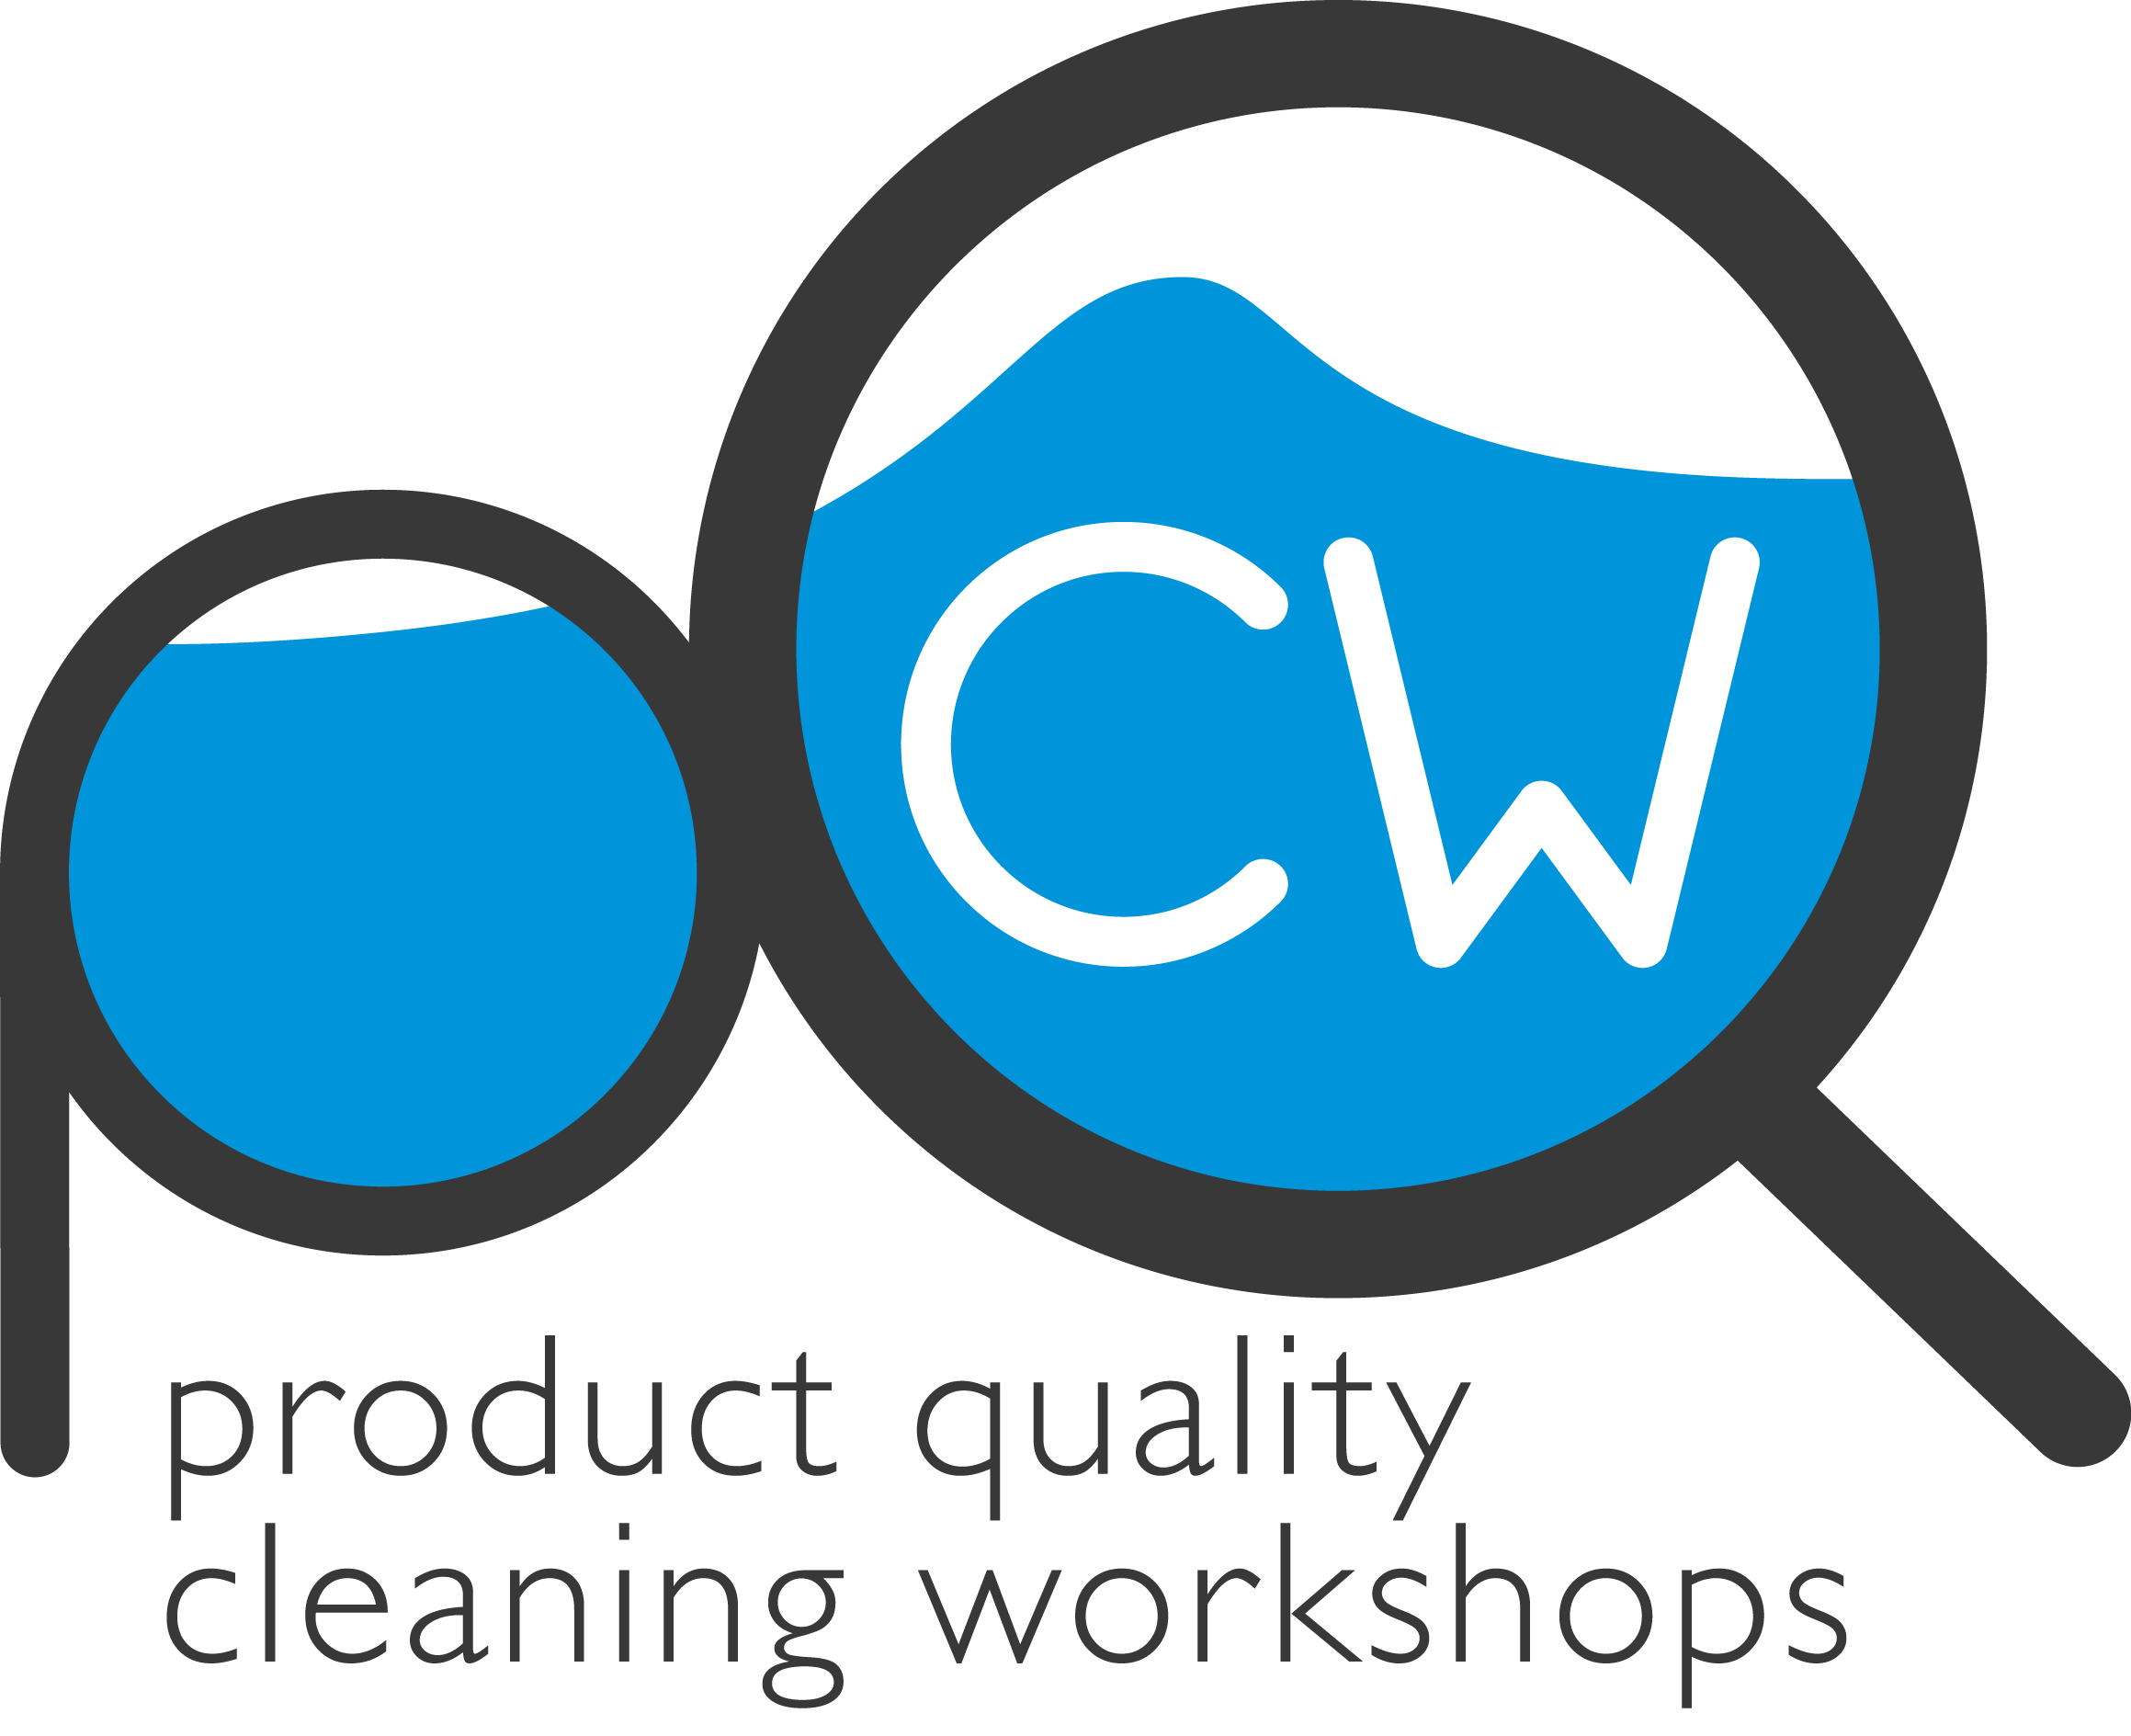 product quality cleaning workshop logo